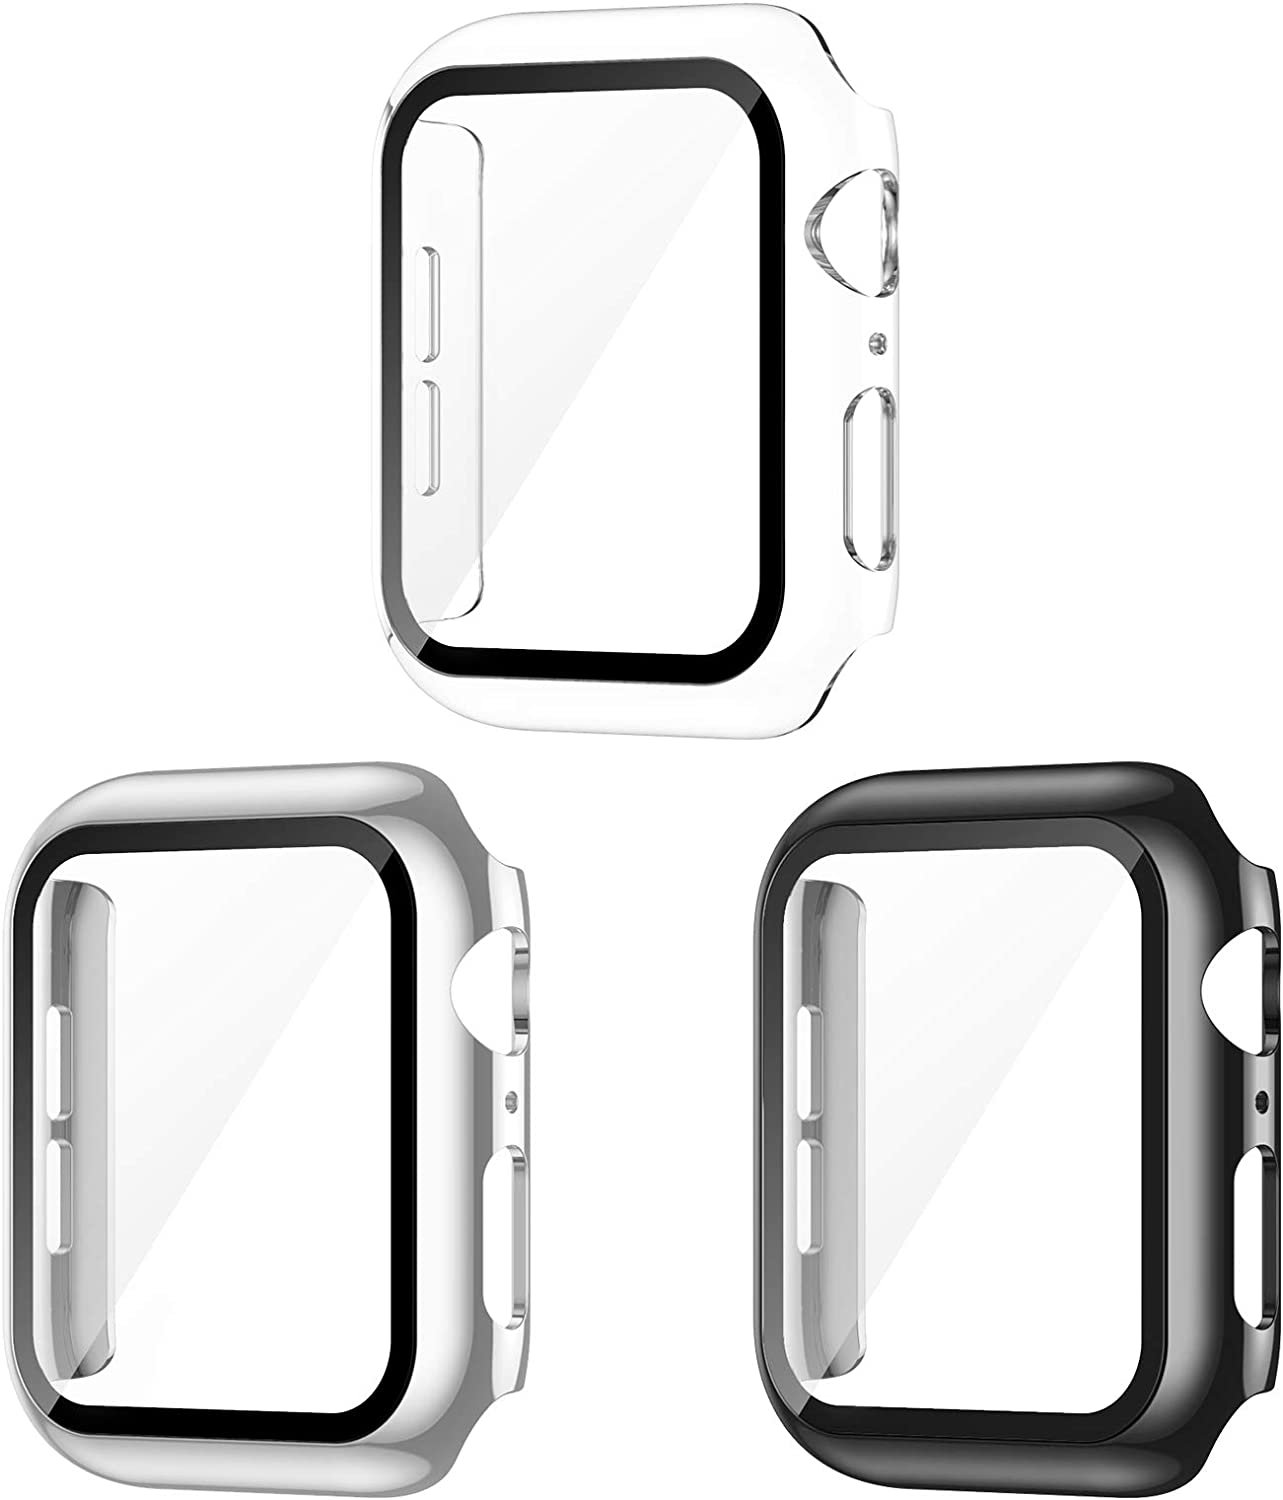 AVIDDA 3 Pack Case with Tempered Glass Screen Protector for Apple Watch 40mm Series 6/5/4/SE, Slim Guard Bumper Full Coverage HD Ultra-Thin Cover Compatible with iWatch 40mm